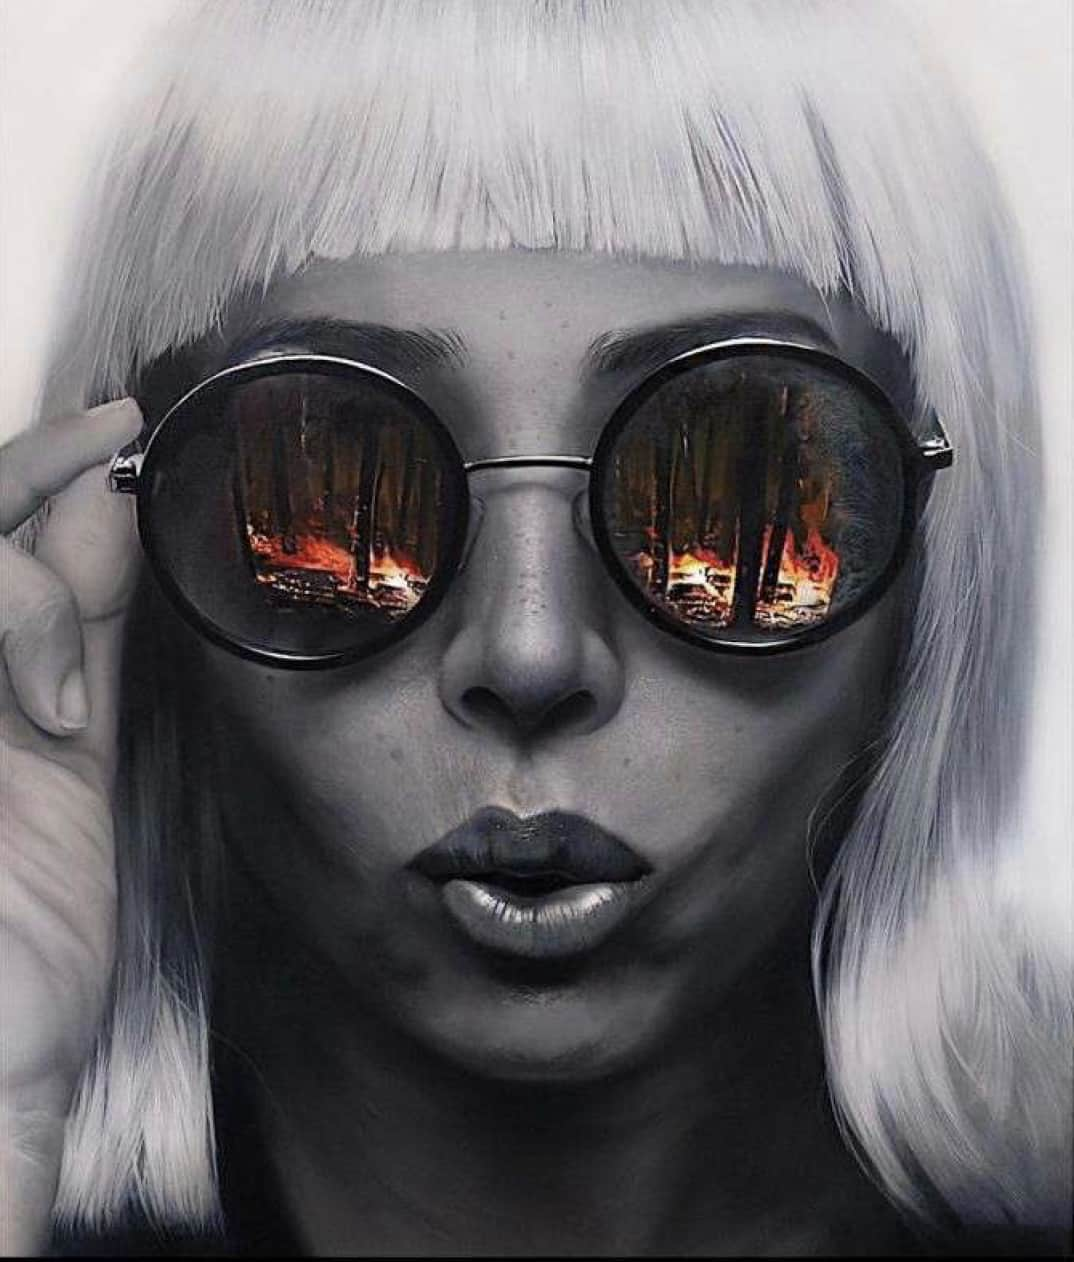 Mike Dargas, On Fire, 2019